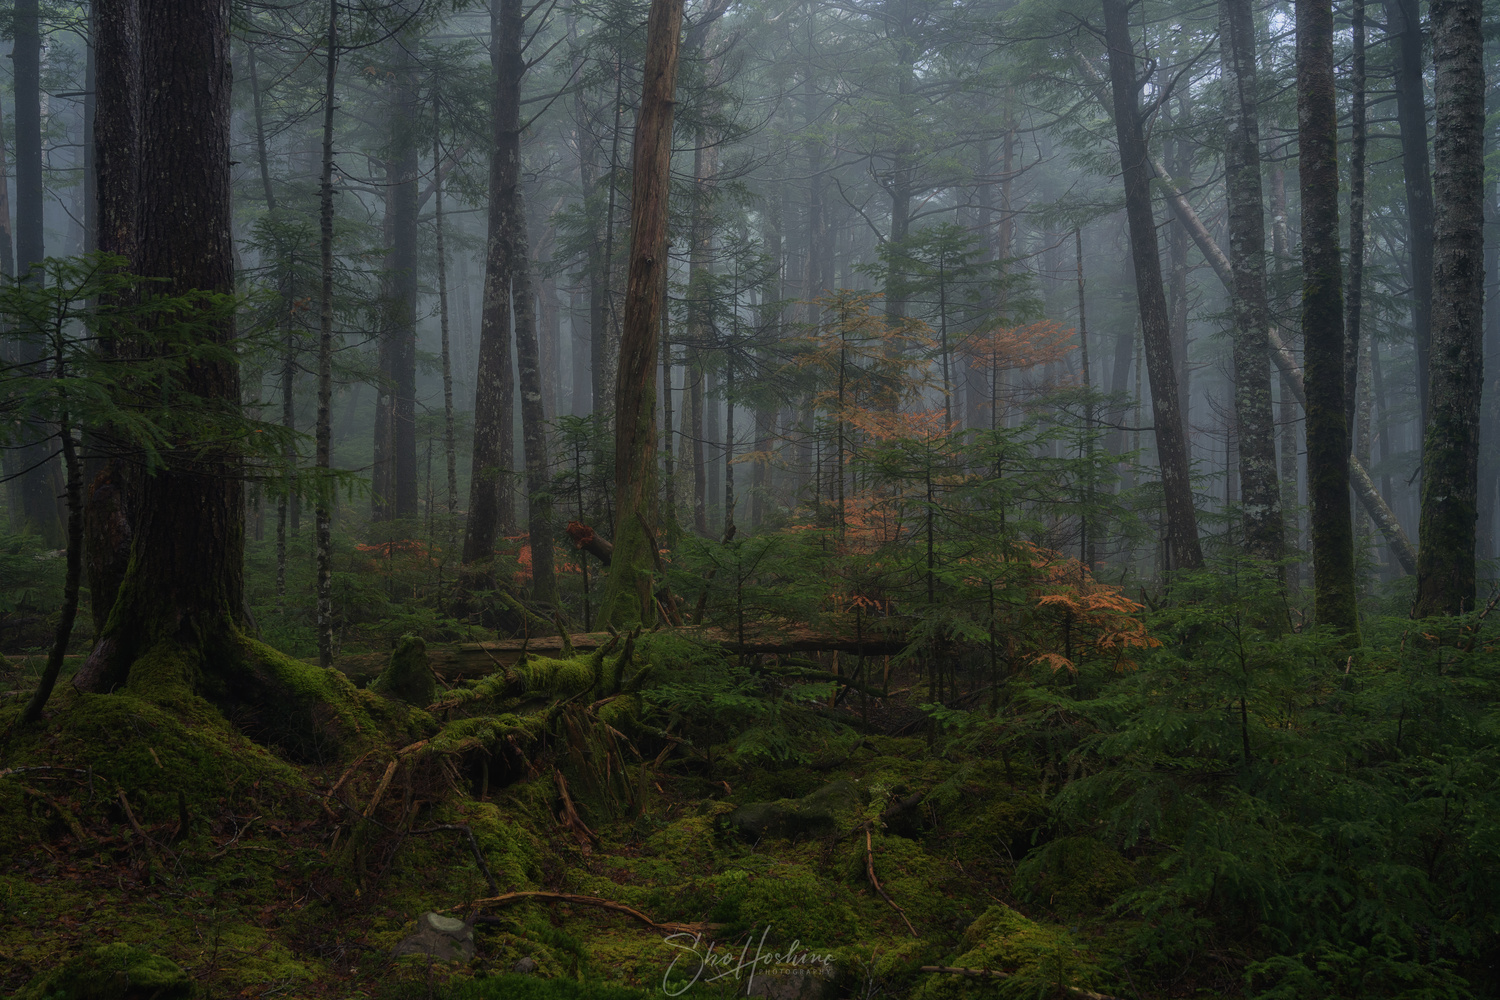 Forest art by Sho Hoshino